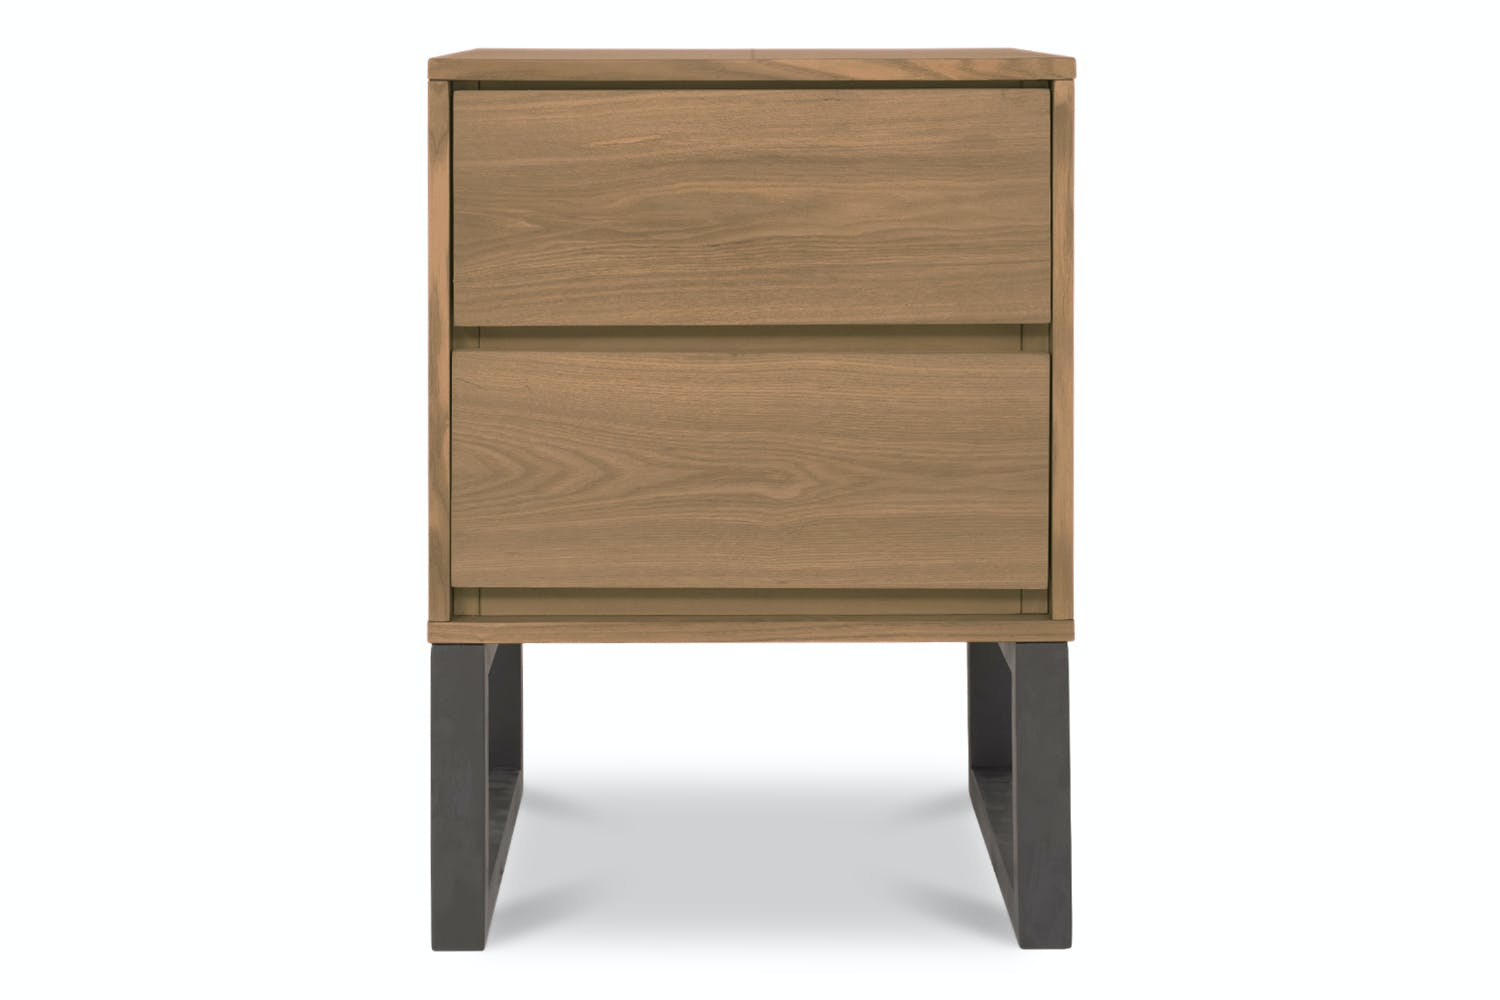 official photos 09889 84bee Alexis 2 Draw Bedside Table | Ash/Charcoal